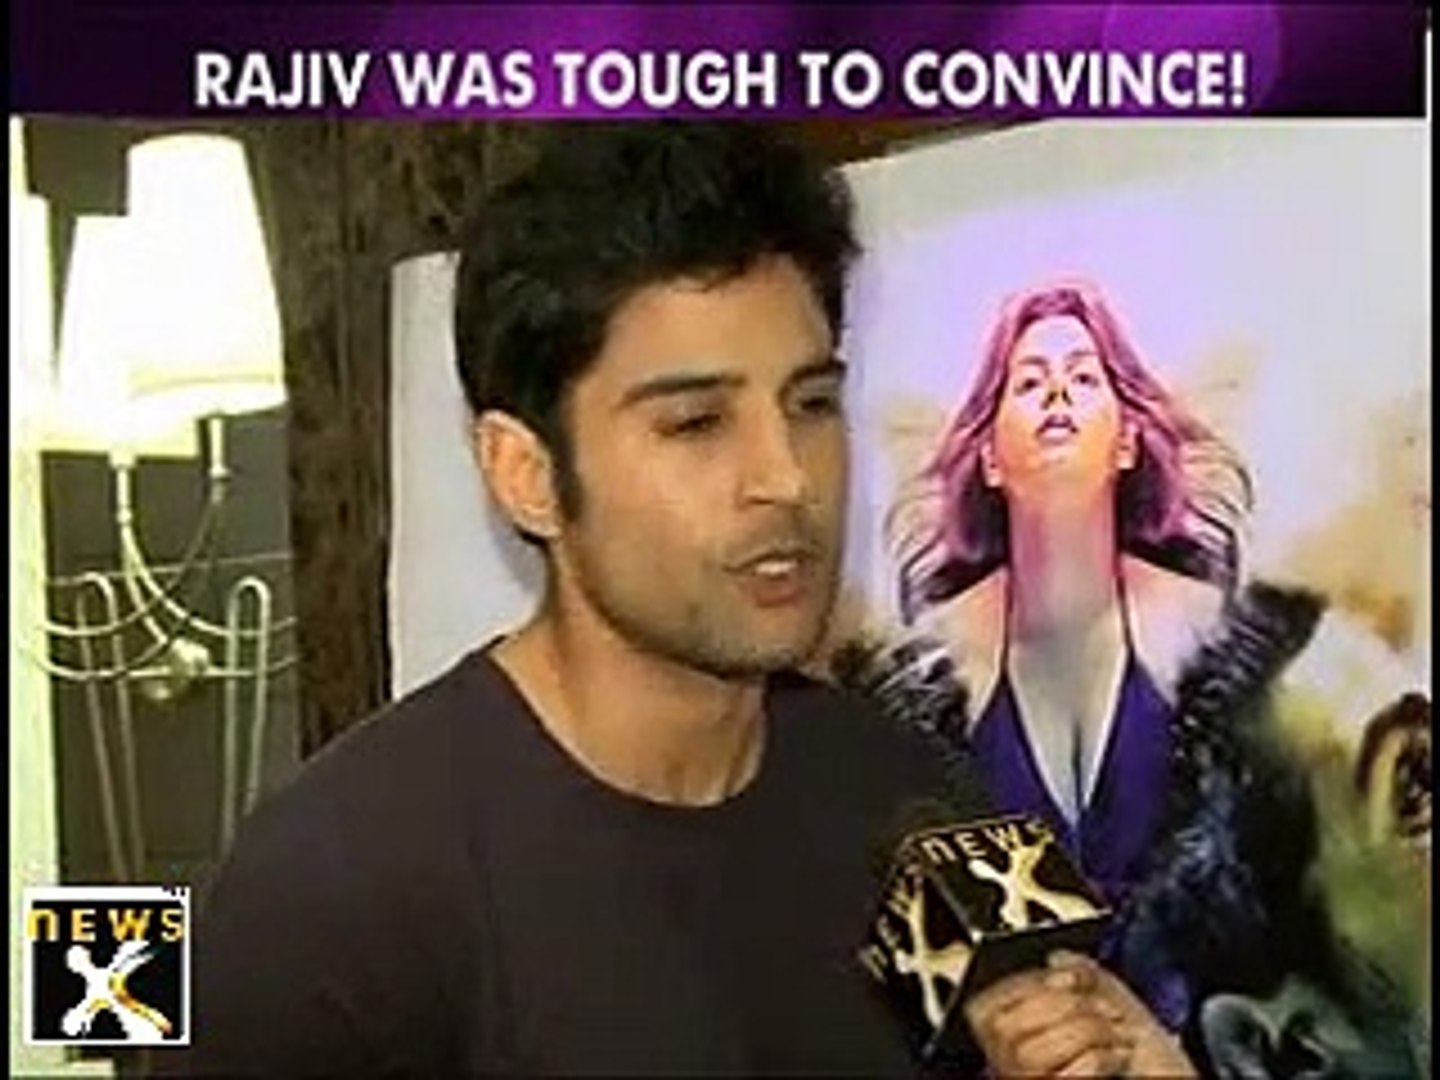 NEWS NOOPER MISHRA CATCHES UP WITH ACTOR Rajeev khandelwal